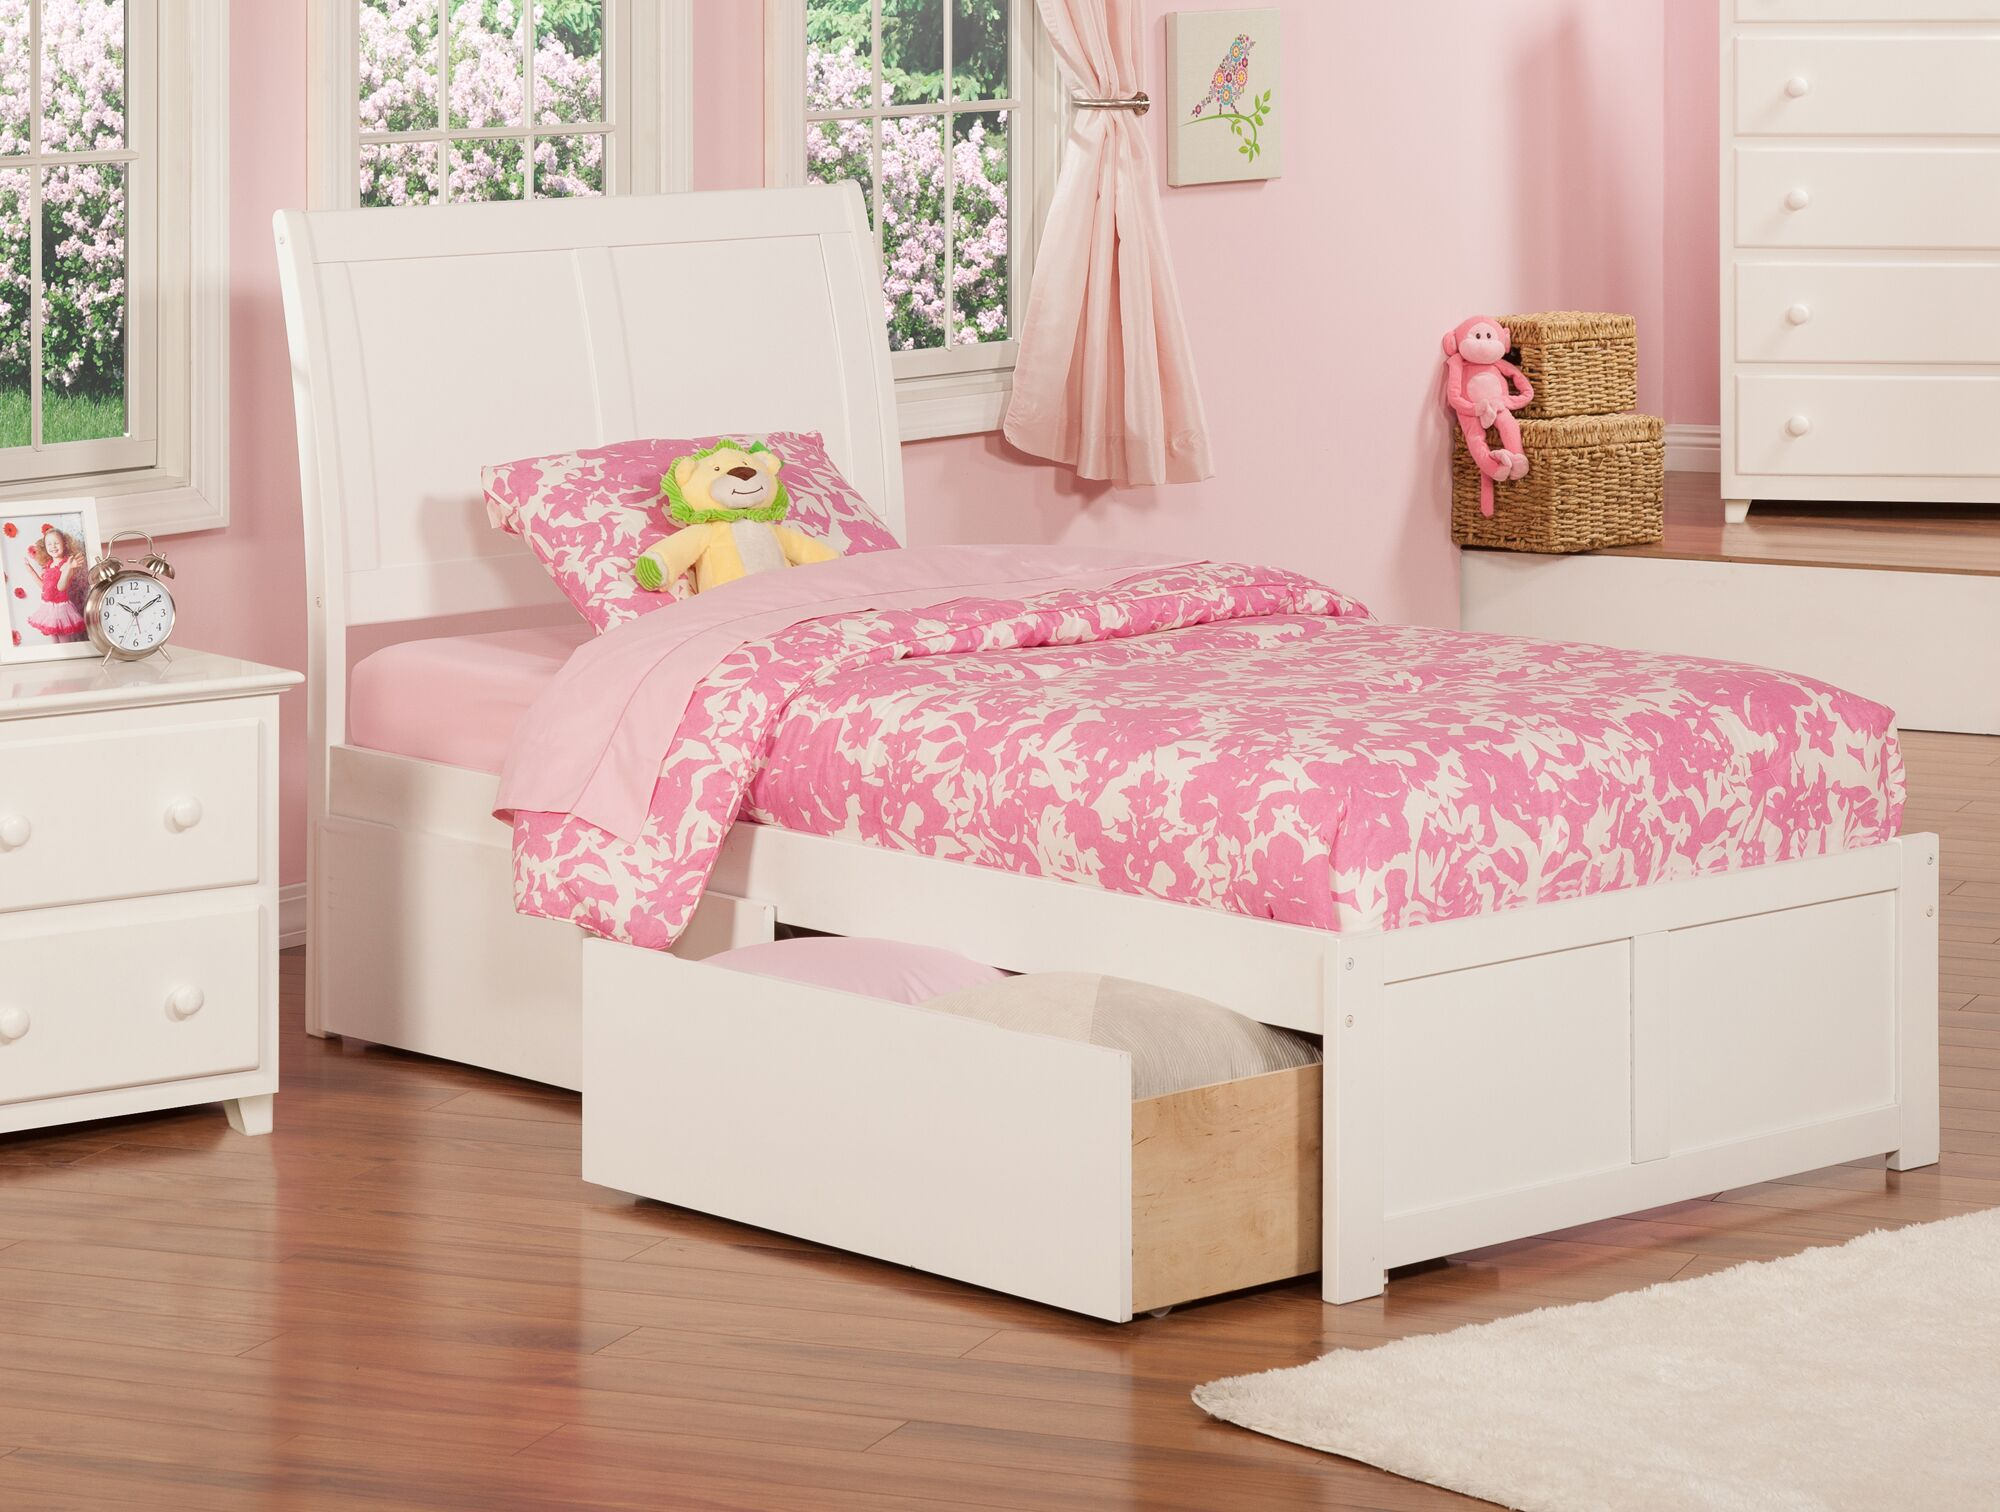 Wrington Storage Platform Bed Color: White, Size: Extra Long Twin